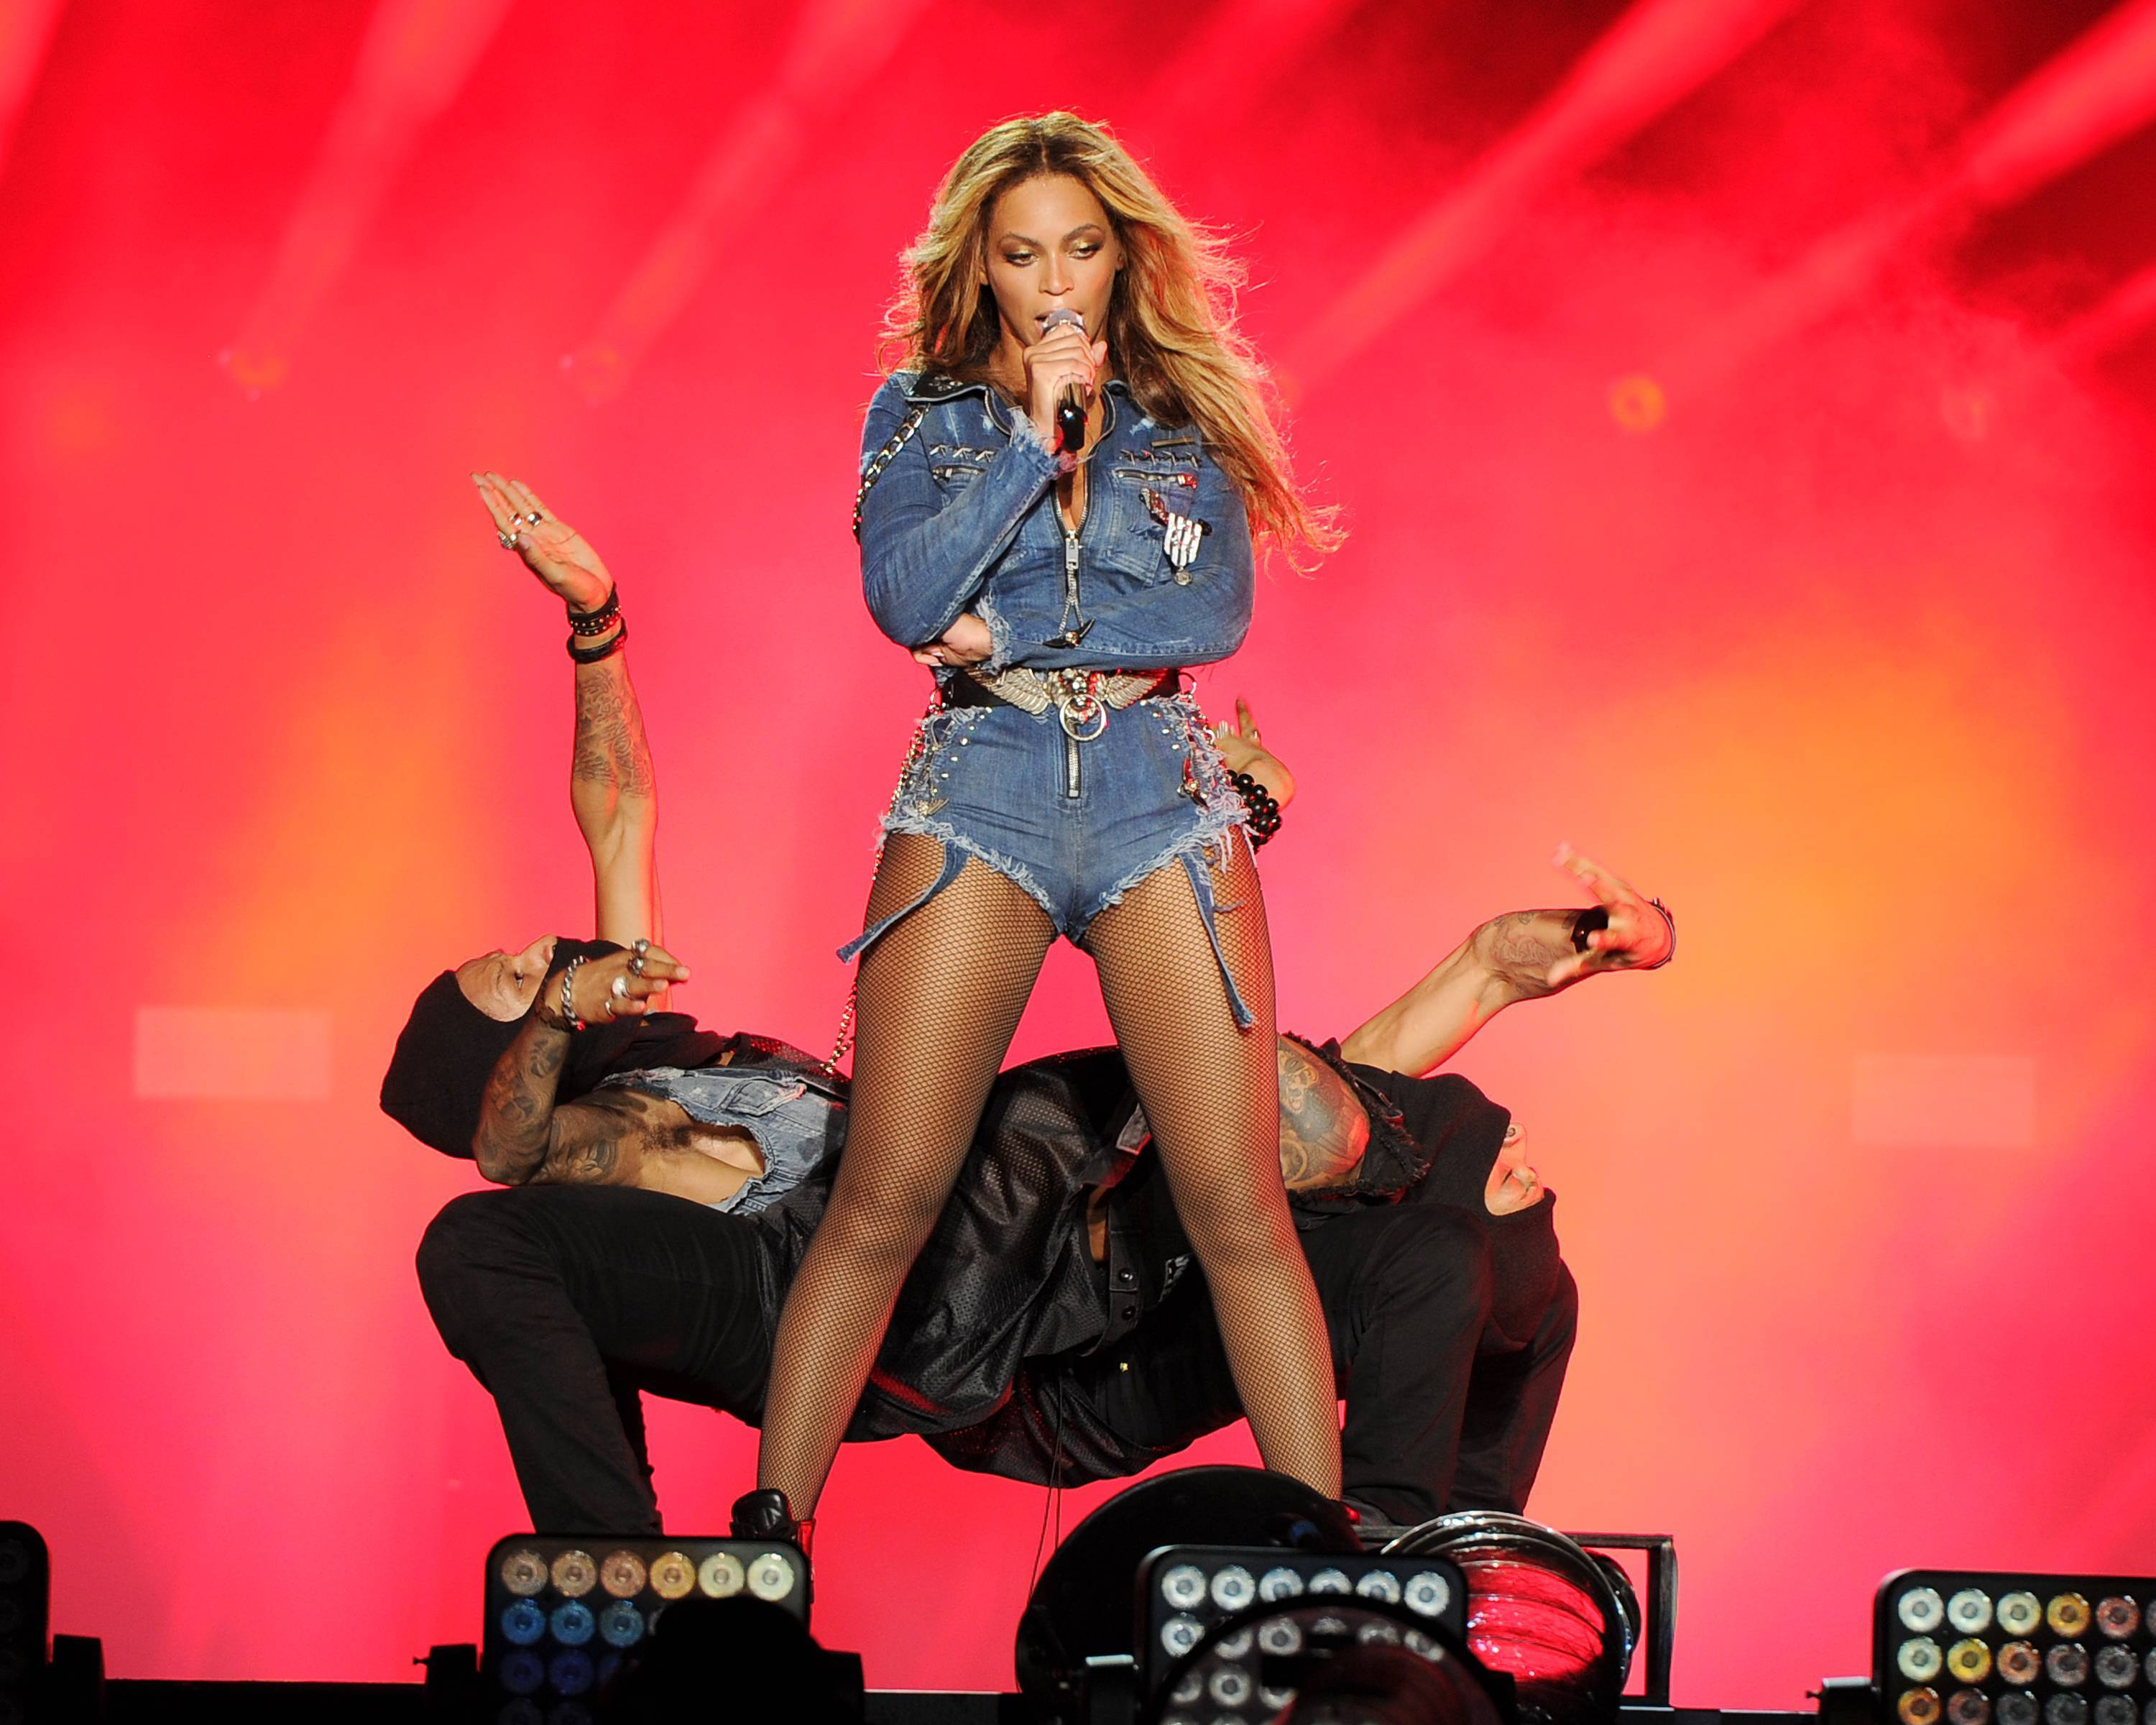 Beyonce performs on the opening night of the On The Run Tour at Sun Life Stadium on Wednesday in Miami, Florida.